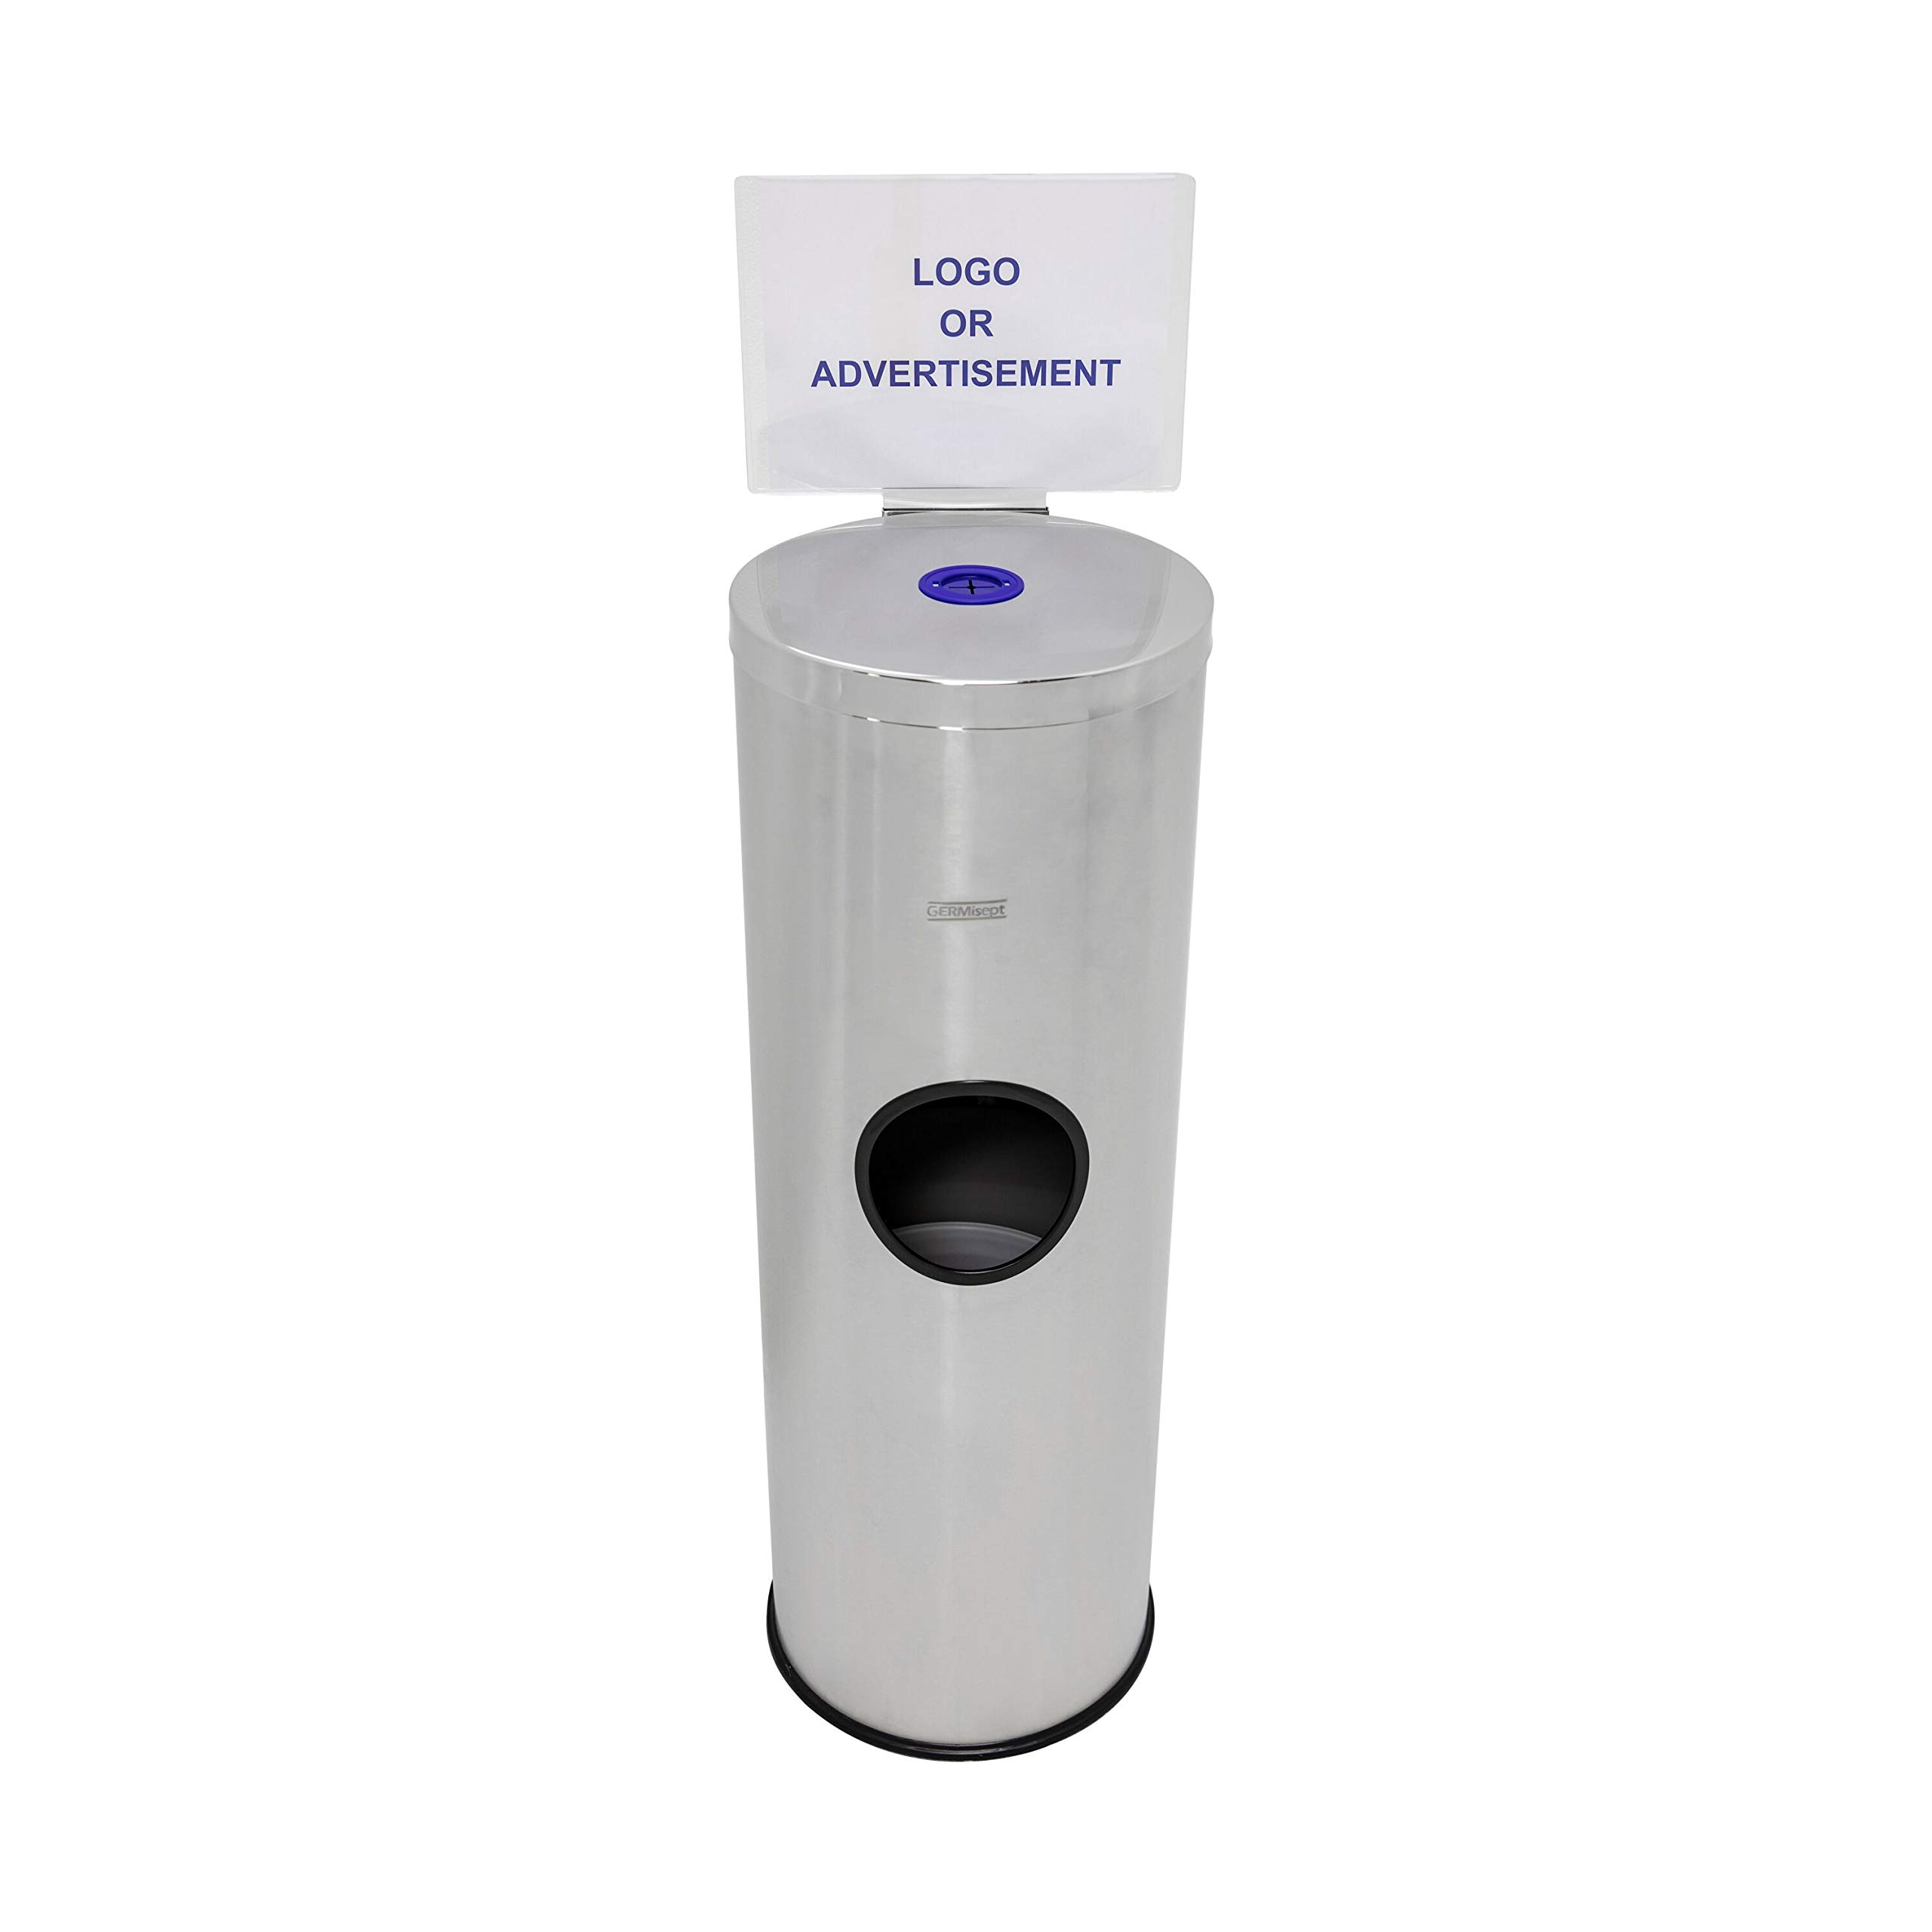 Germisept Stainless Steel Wipes Dispenser with High Capacity Built-in Trash Can and Back Door Access, with Sign Board by GERMISEPT (Image #1)